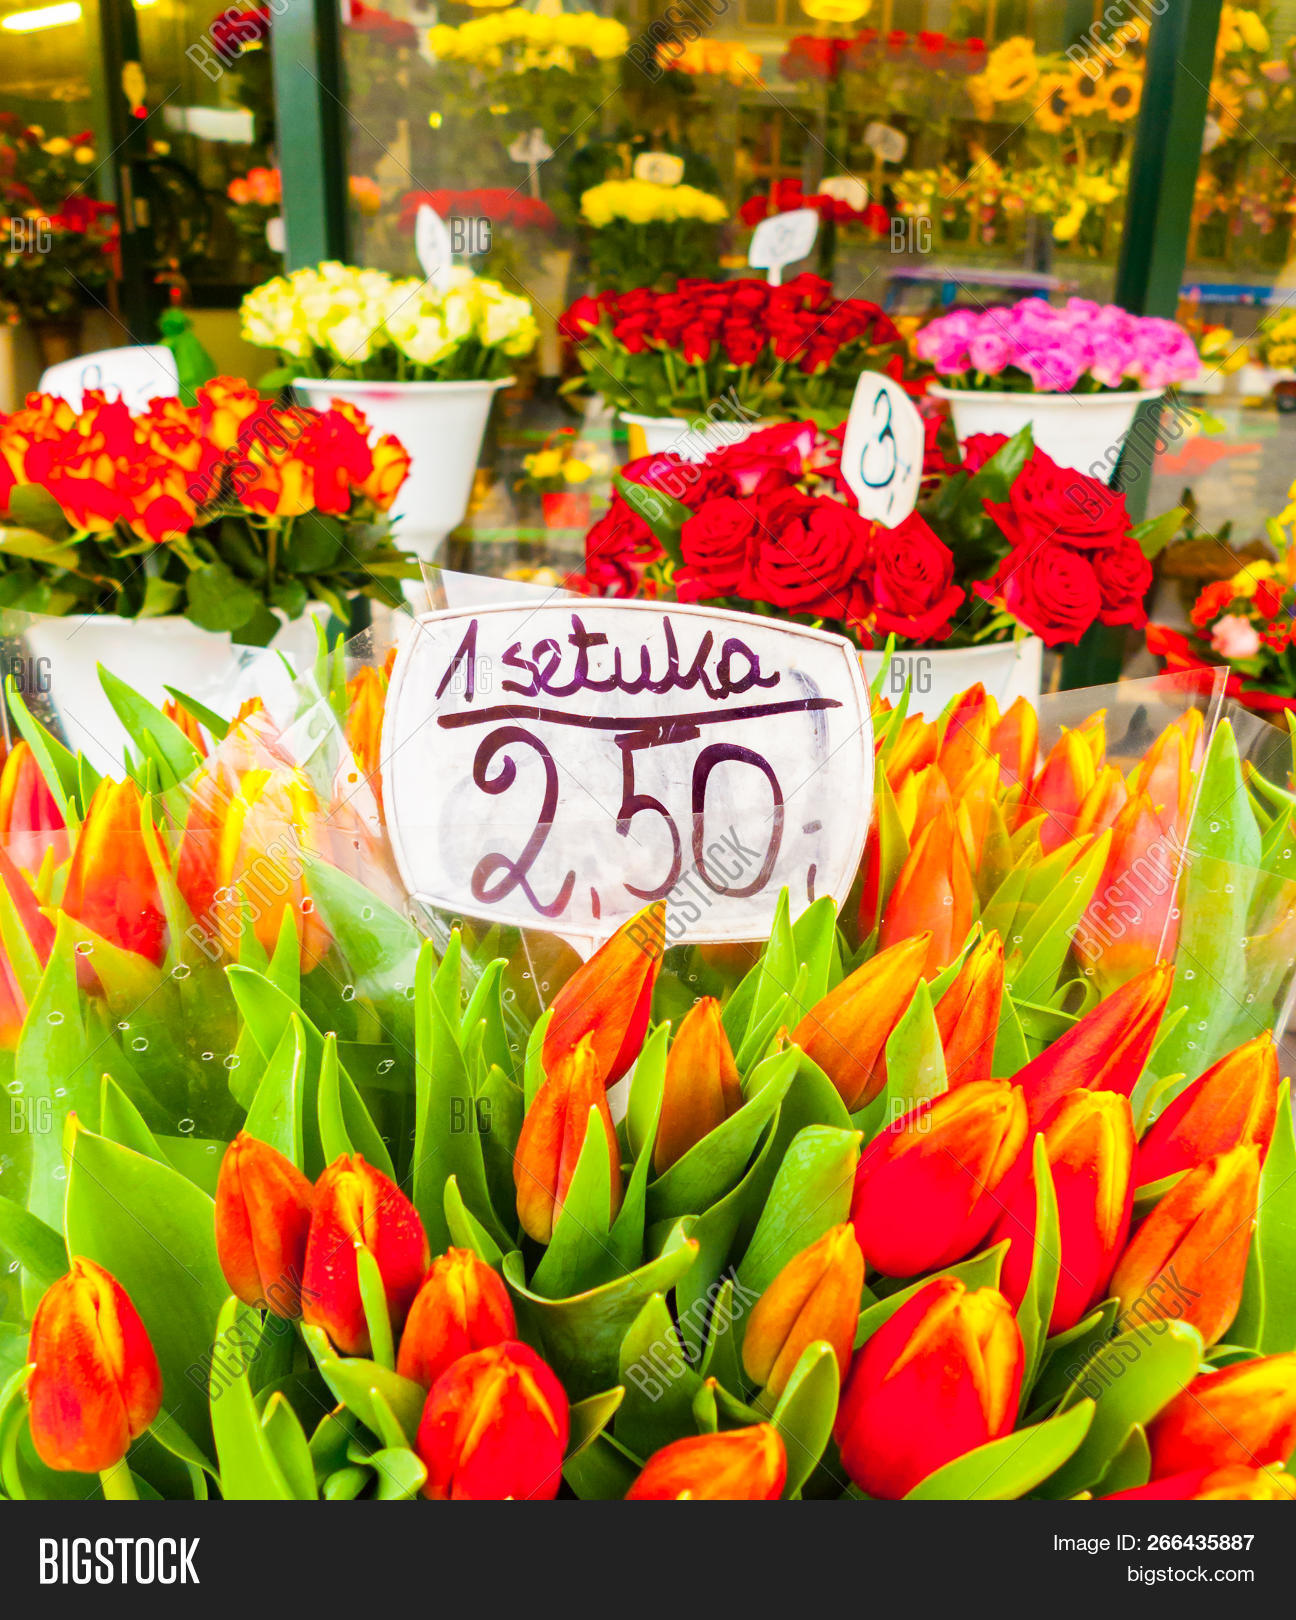 Tulips For Sale At 25euro A Piece Sztuka In The Flower Market